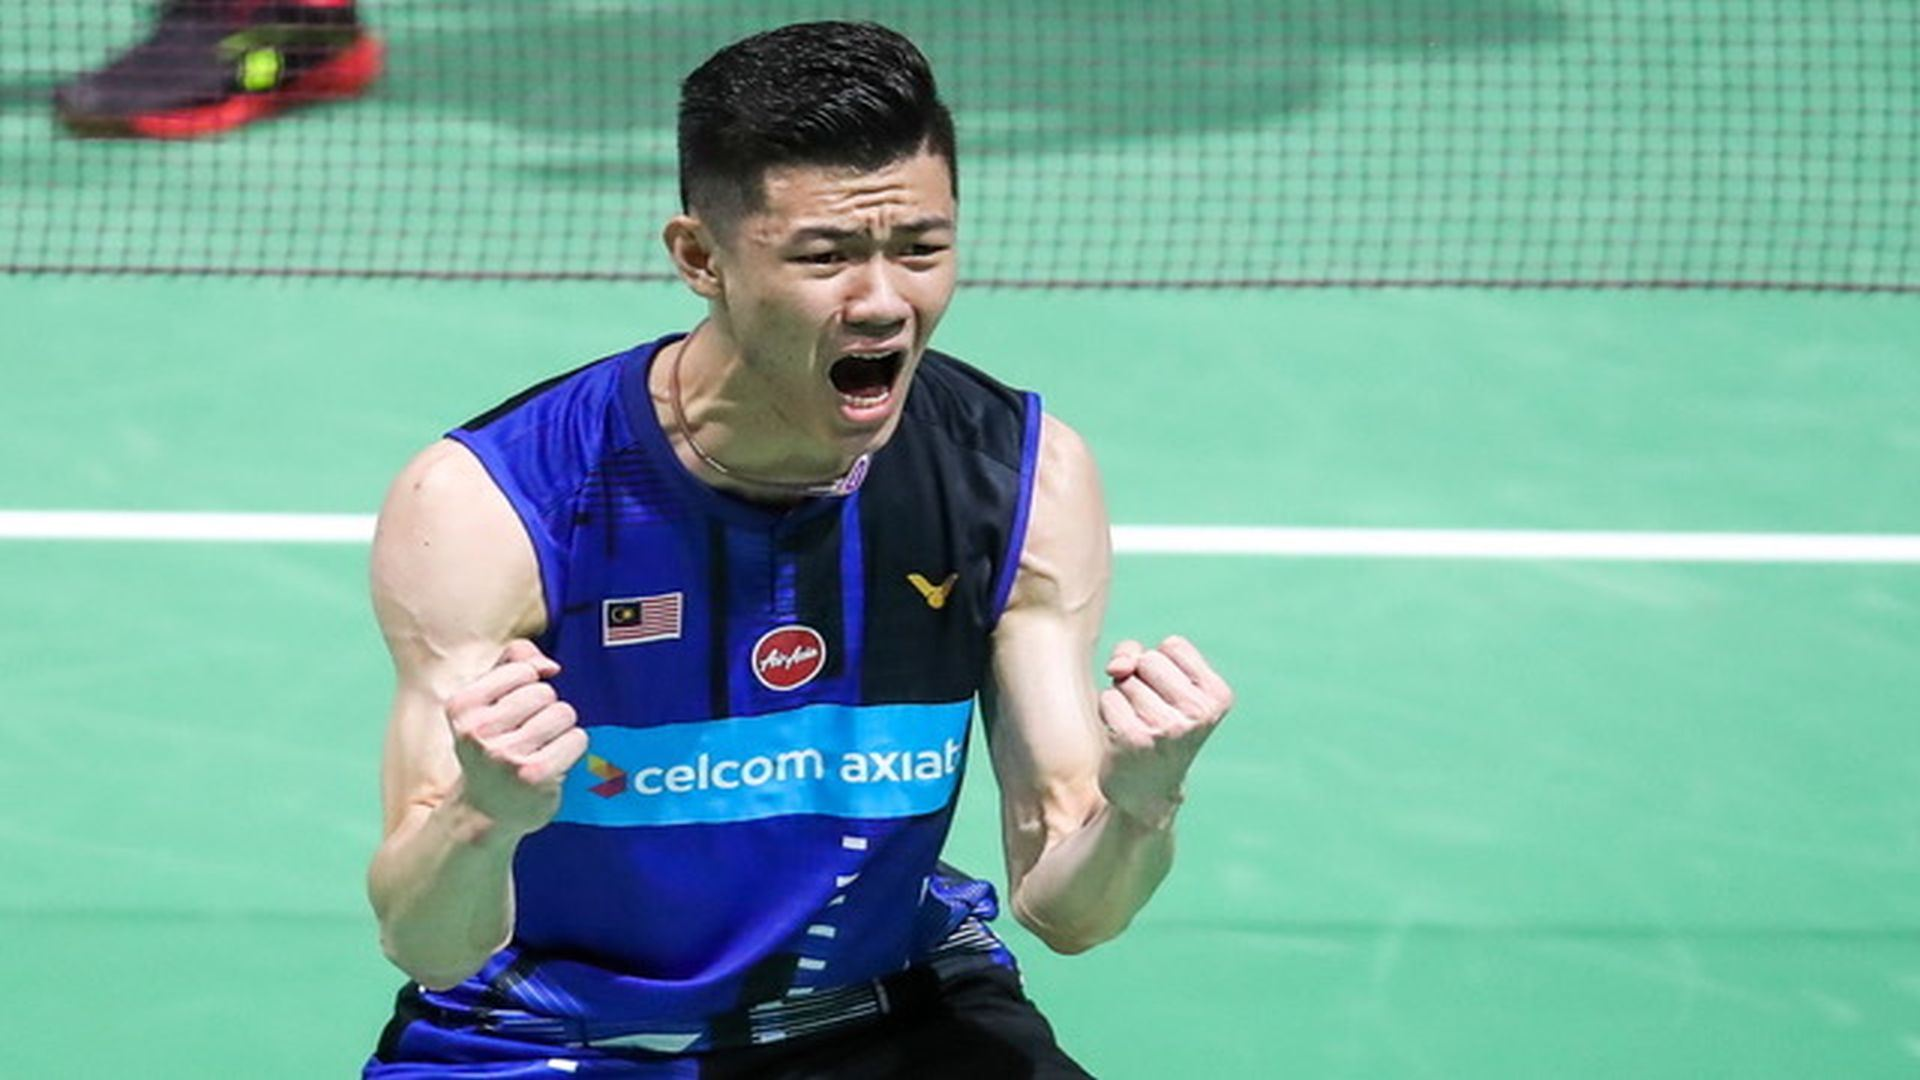 zii jia sets two-year target to reach #1